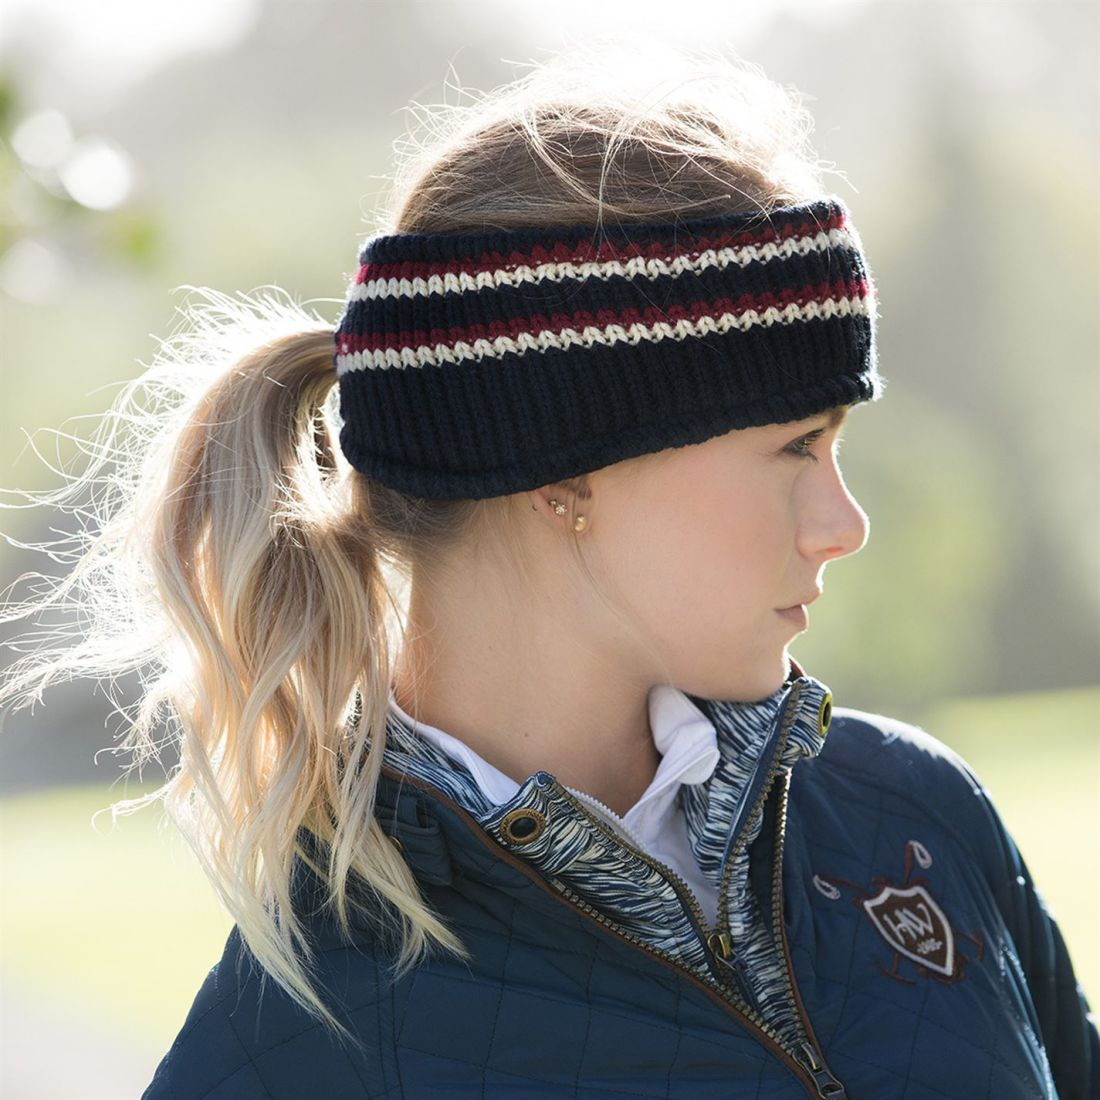 Horseware Stripe Ear Chaud Ladies Headband Chaud Knitwear Pony